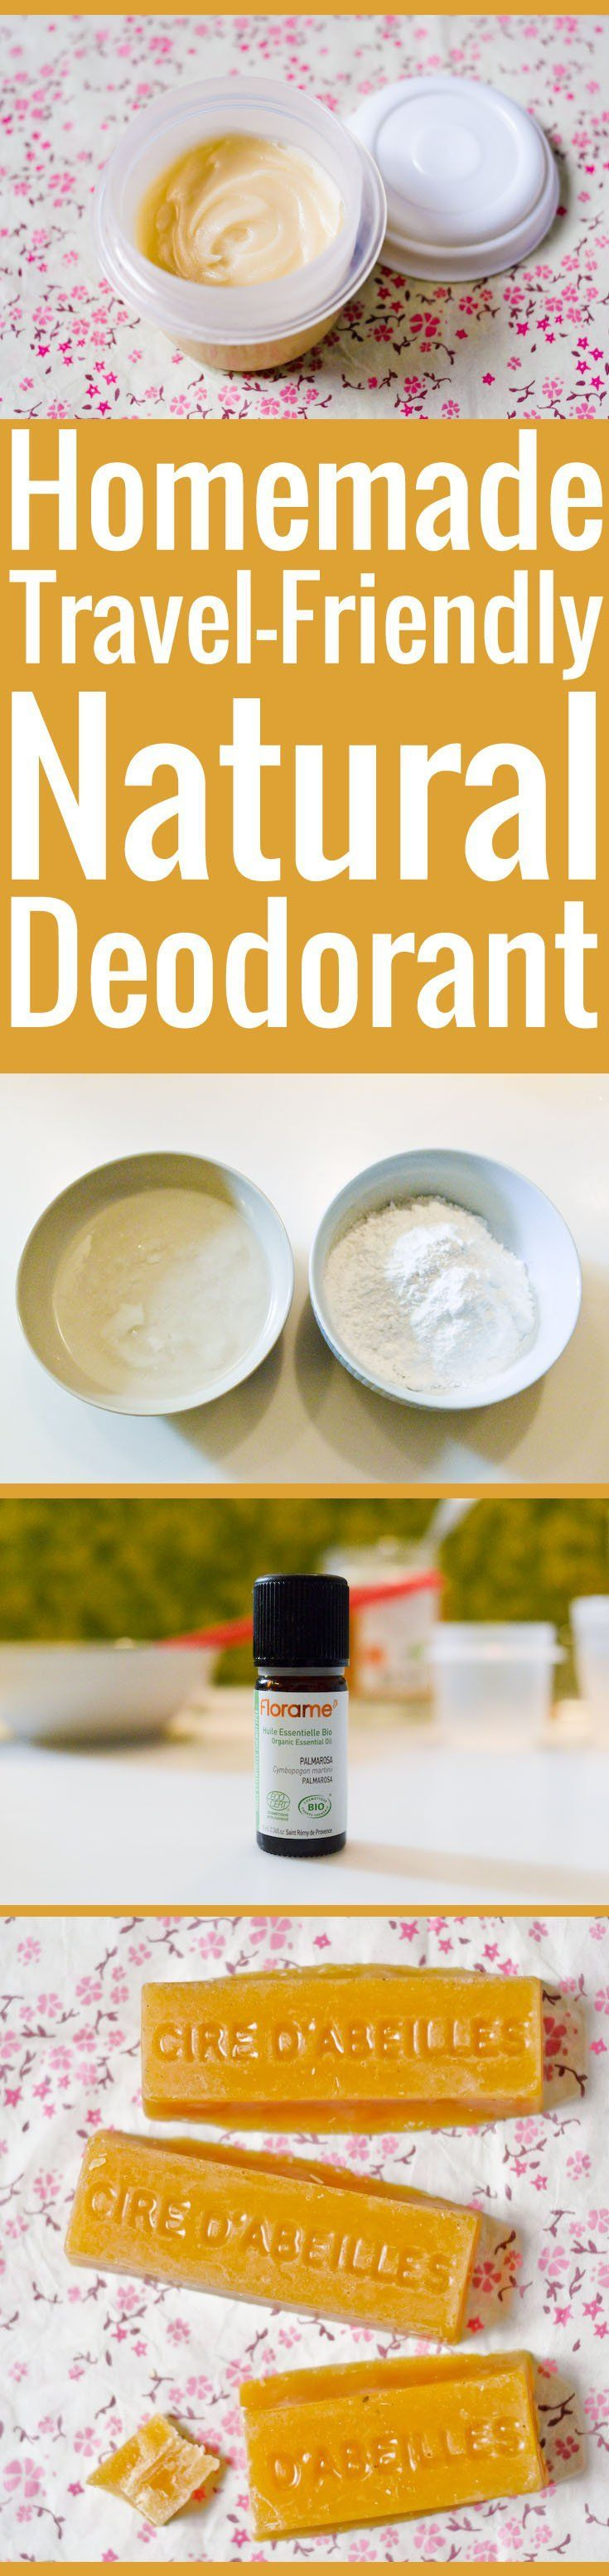 Easy formula for homemade natural deodorant that ACTUALLY WORKS! Easy-to-find ingredients and a creamy consistency that won't leak in your toiletry bag.